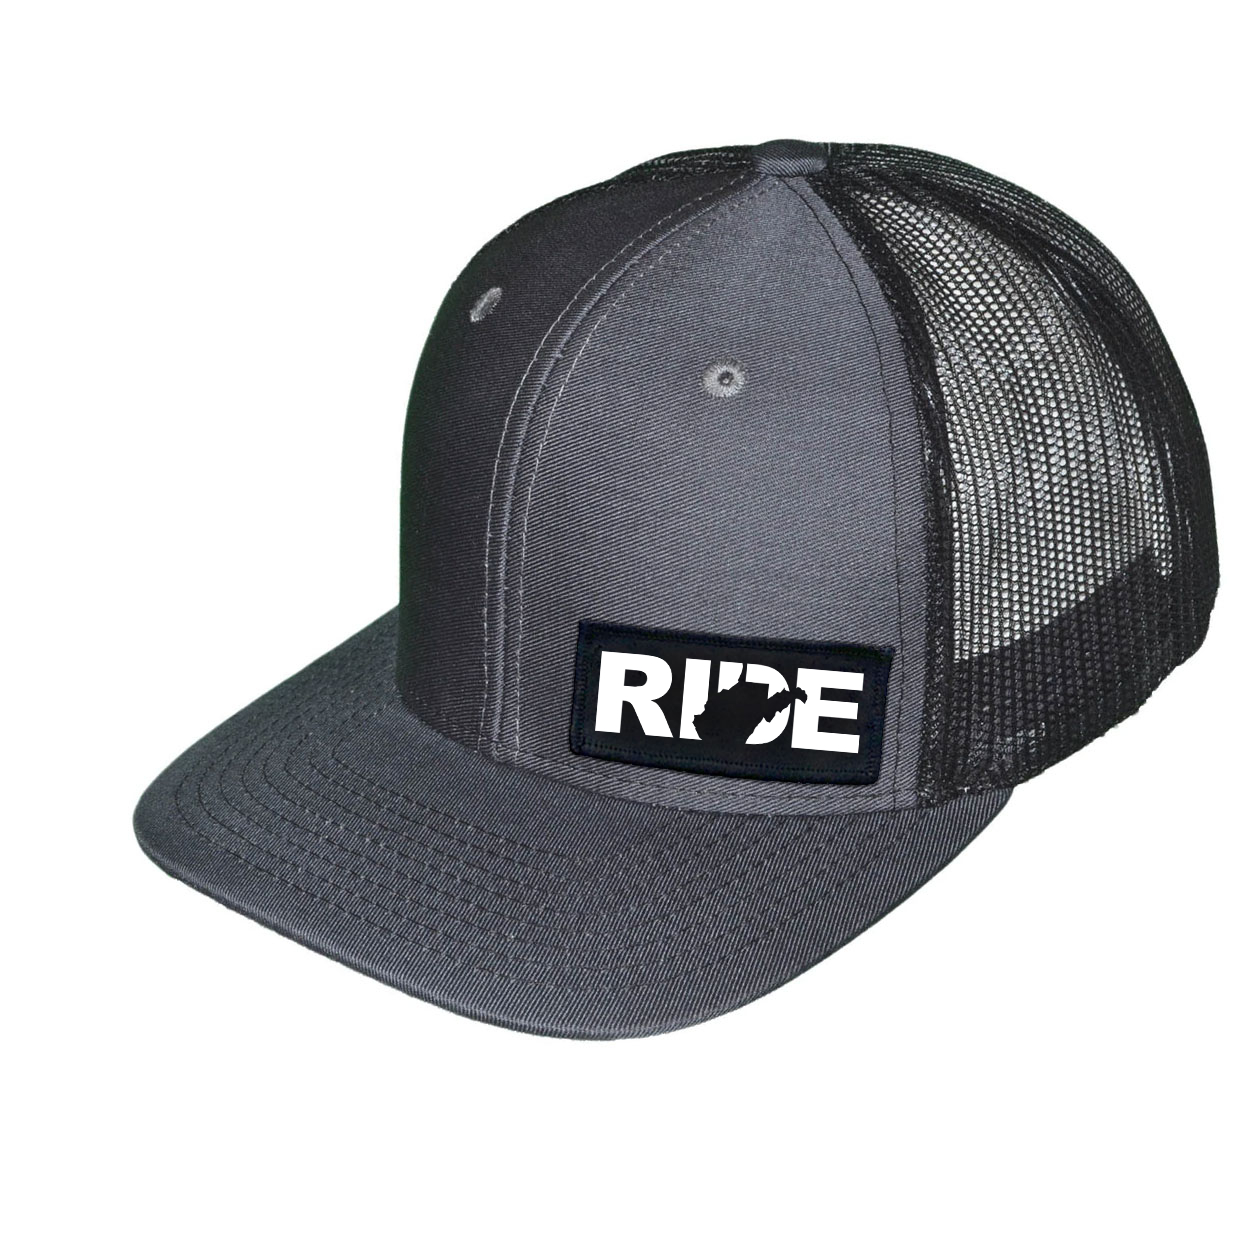 Ride West Virginia Night Out Woven Patch Snapback Trucker Hat Dark Gray/Black (White Logo)